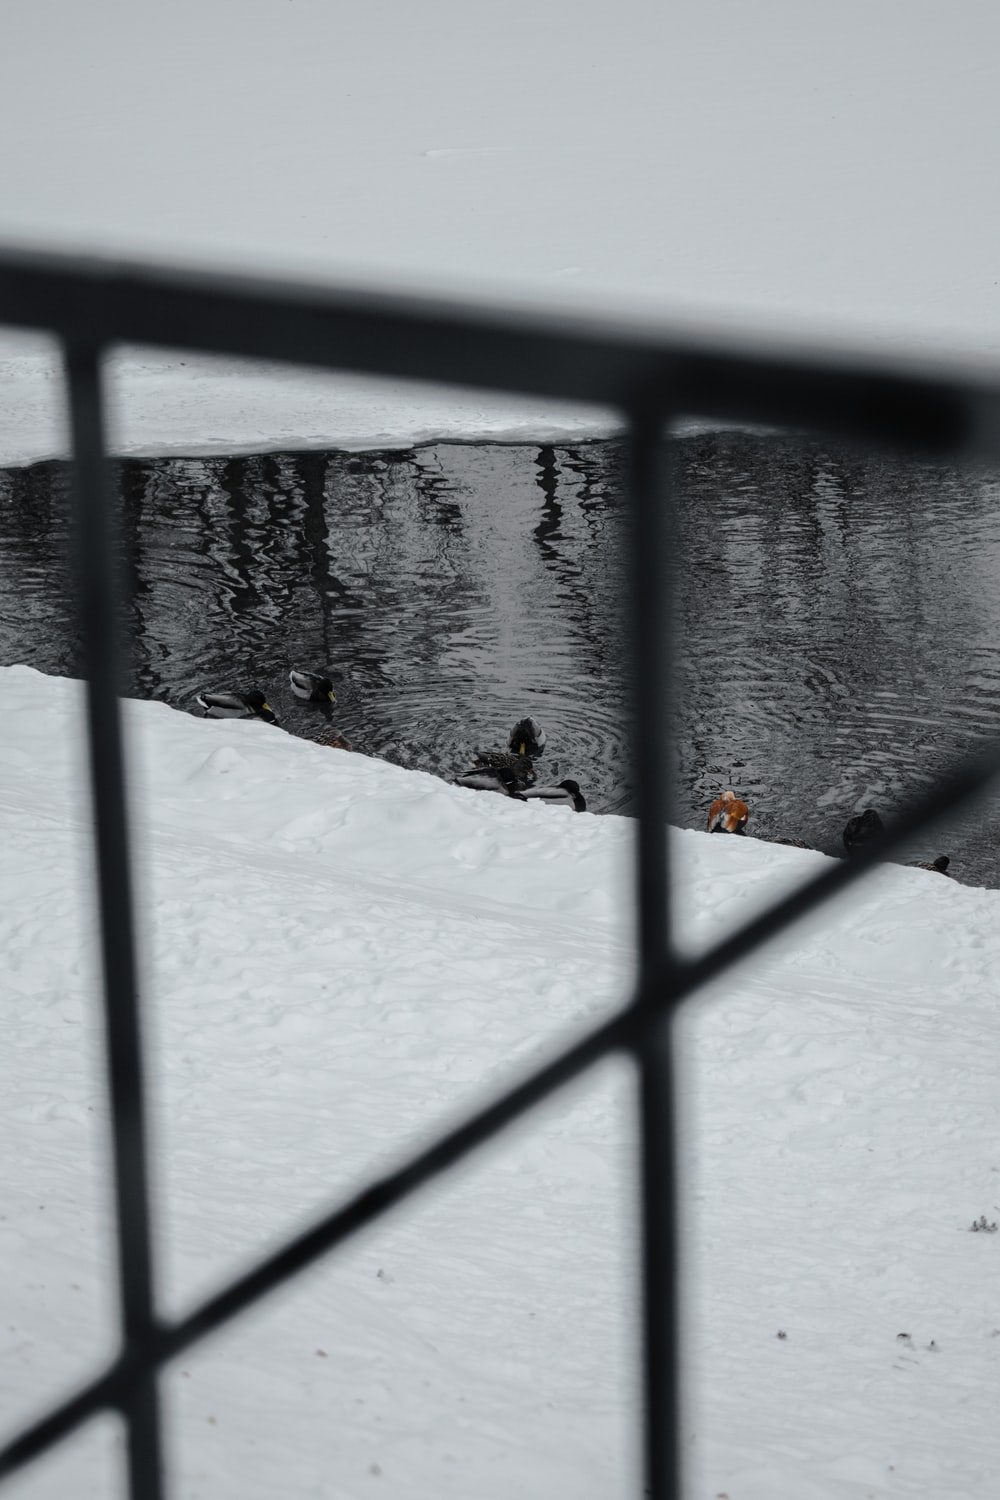 person in black jacket and black pants sitting on snow covered ground during daytime